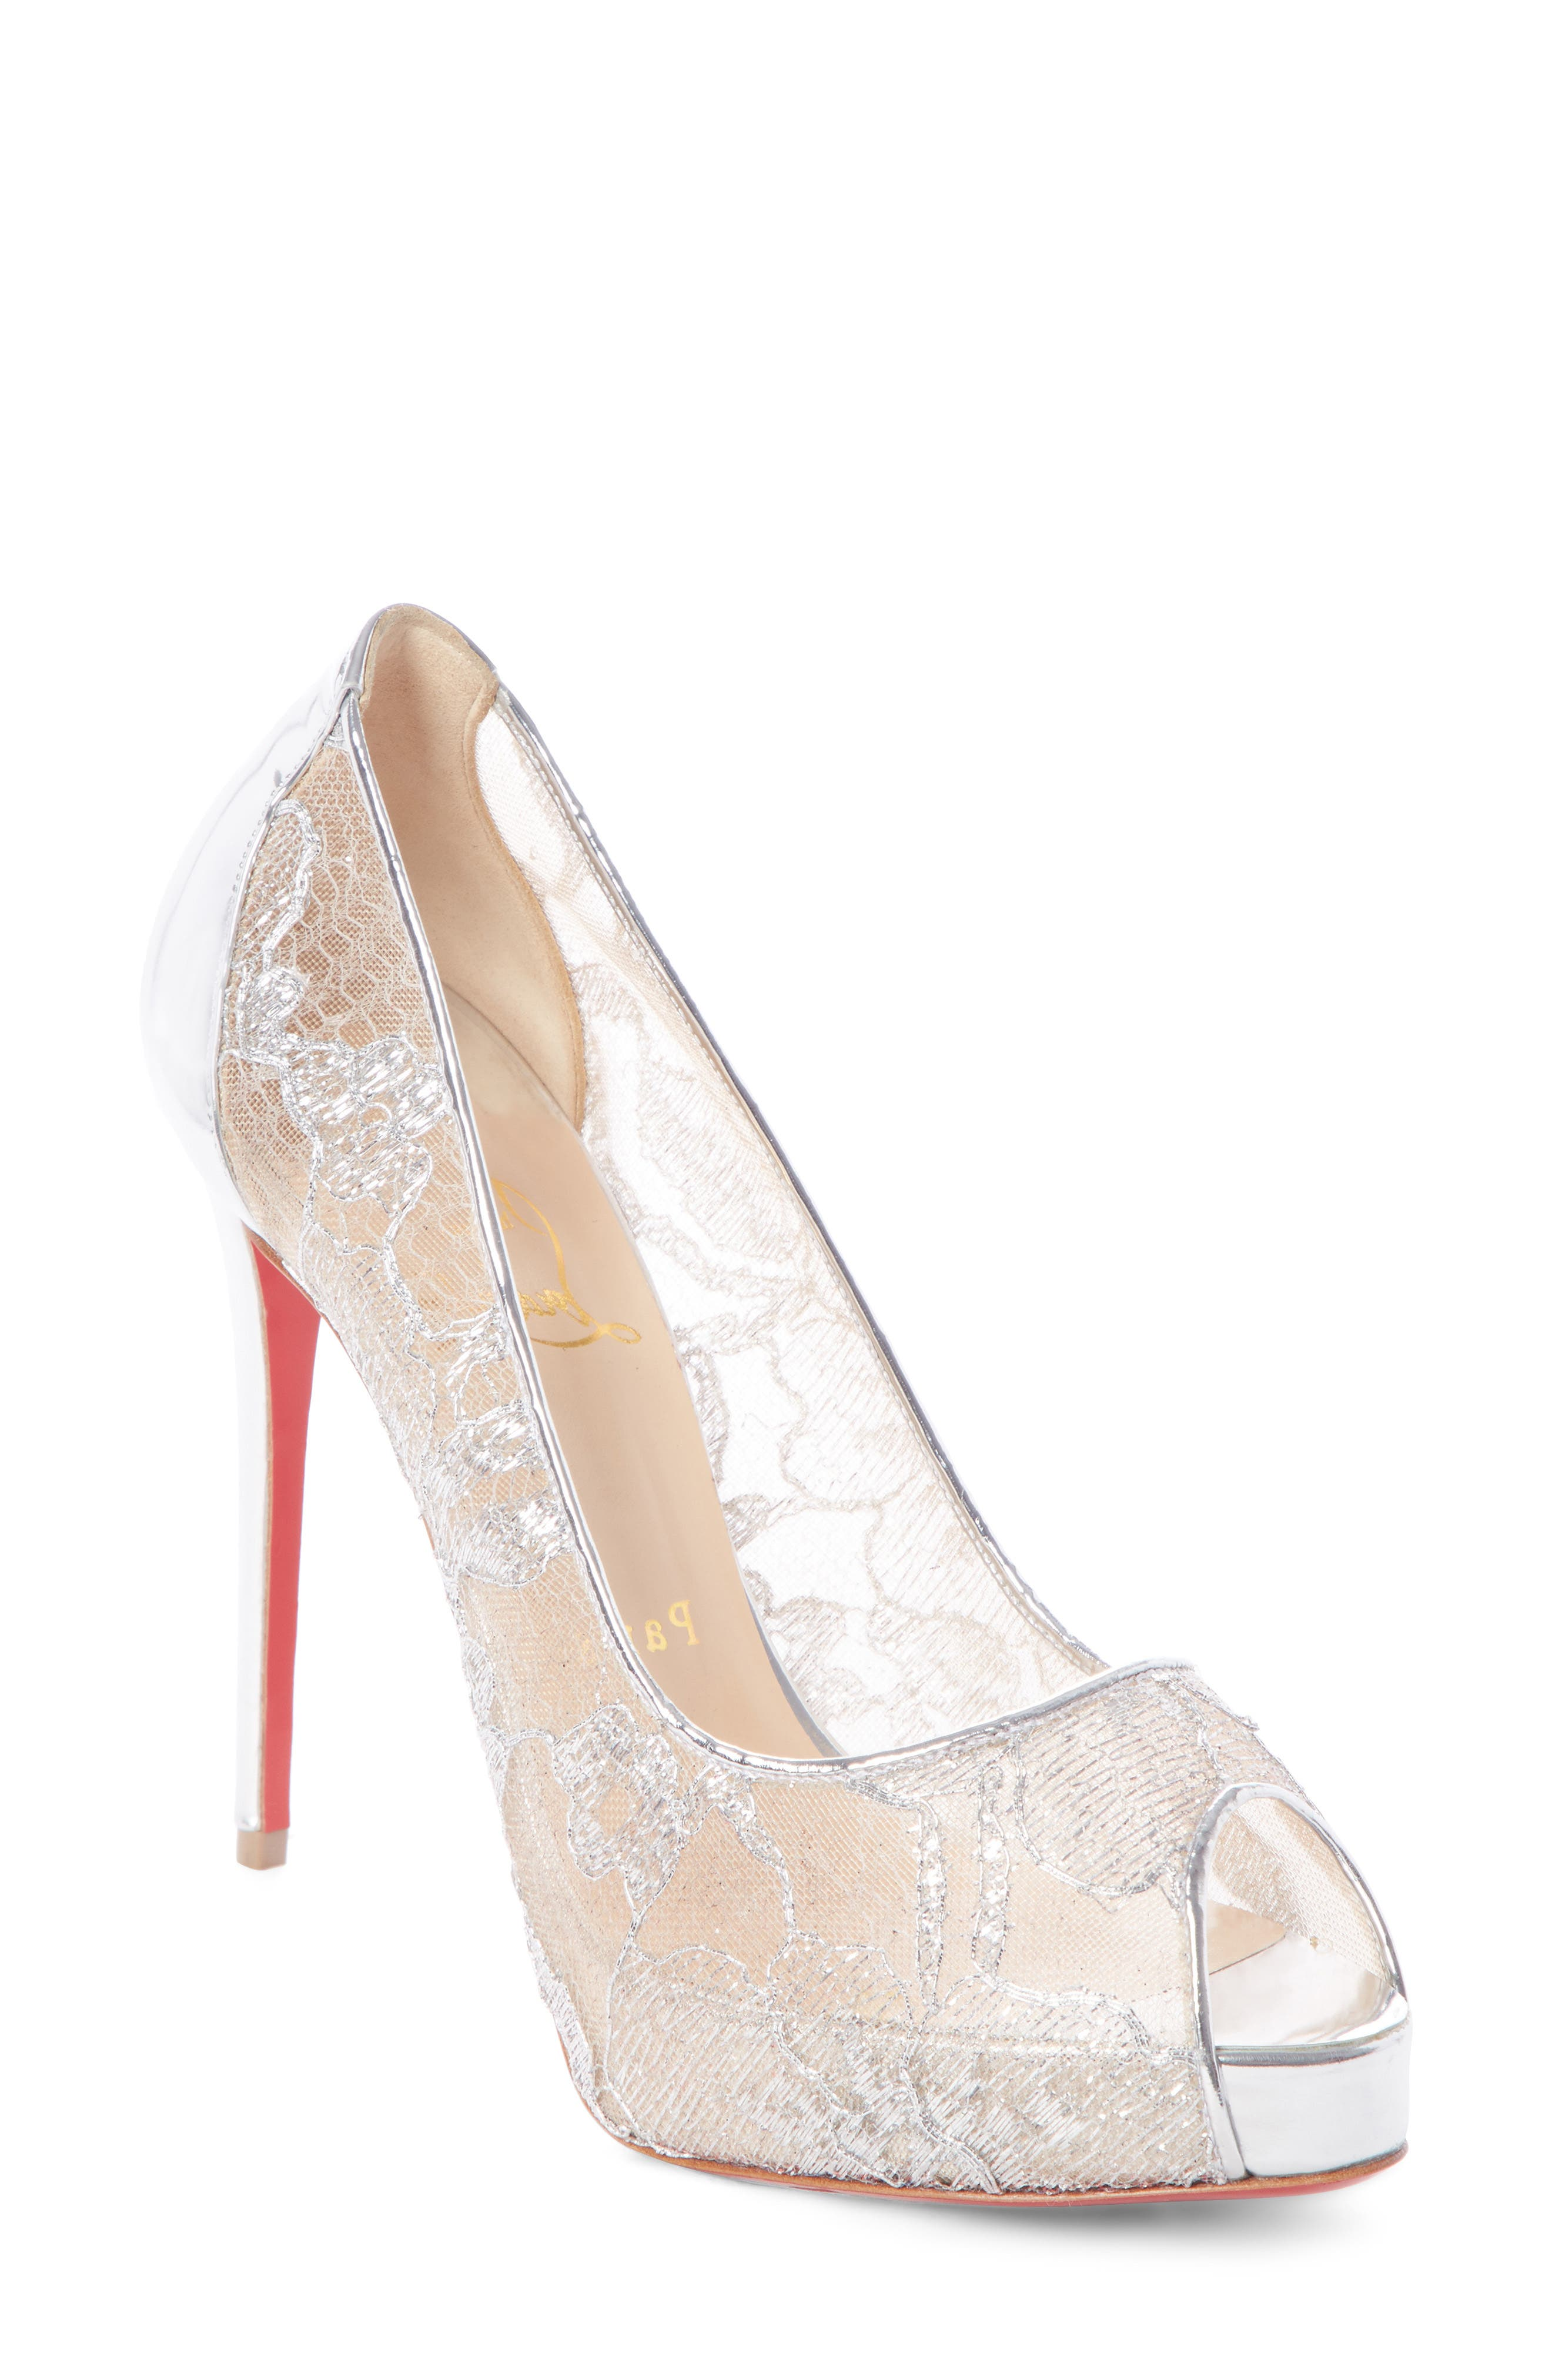 Very Lace 120Mm Metallic Peep-Toe Red Sole Pumps in Silver